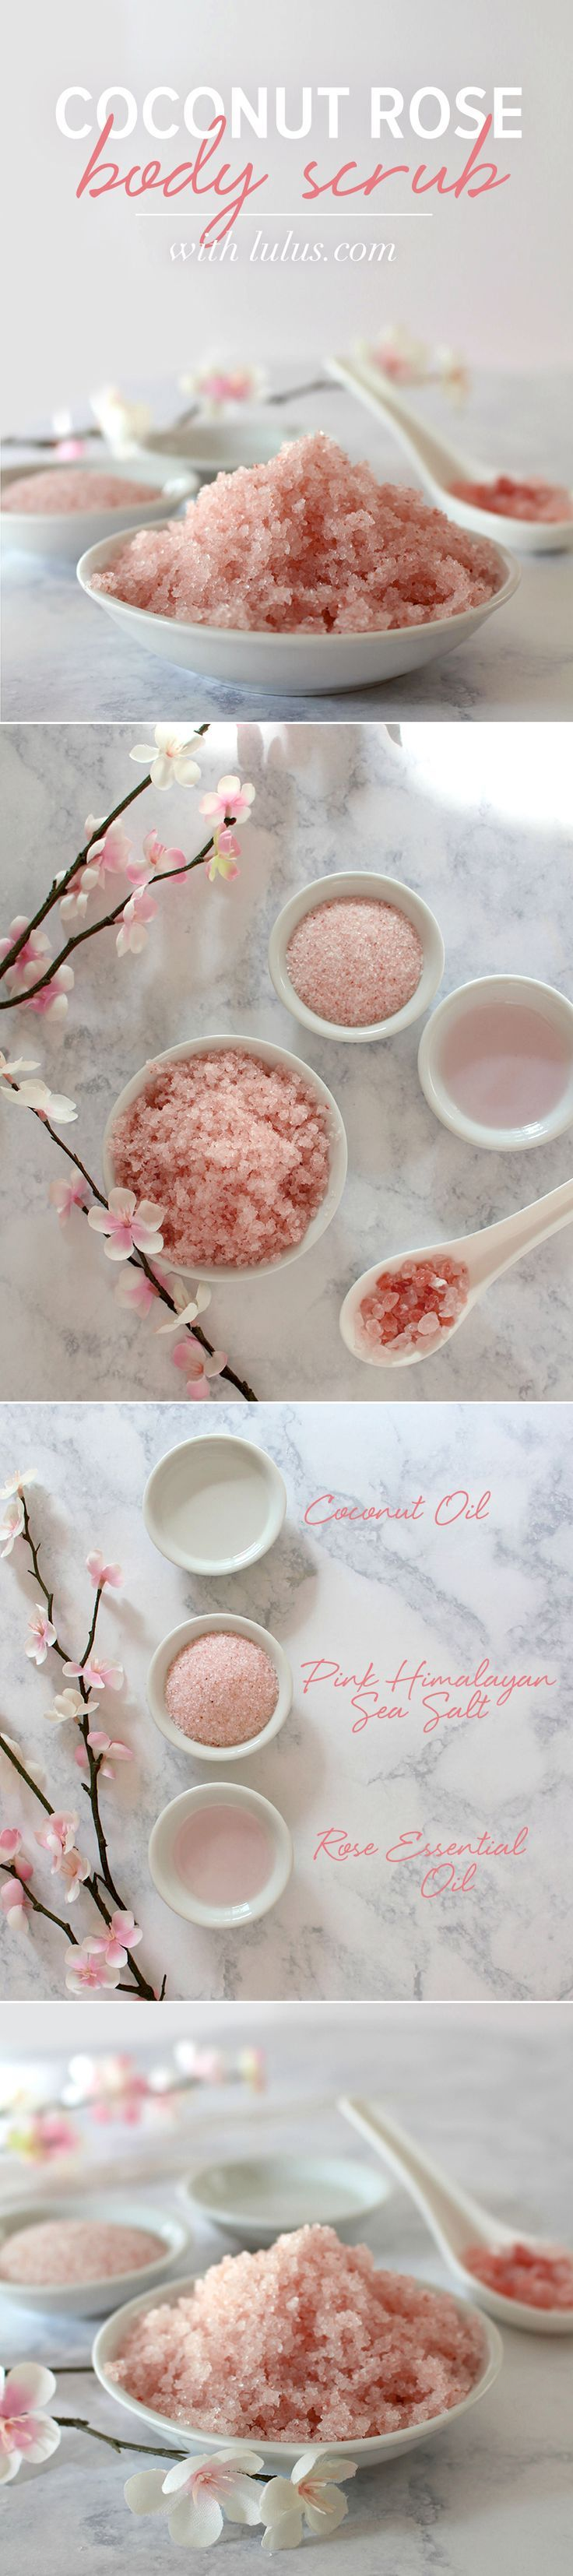 Coconut Rose Body Scrub!